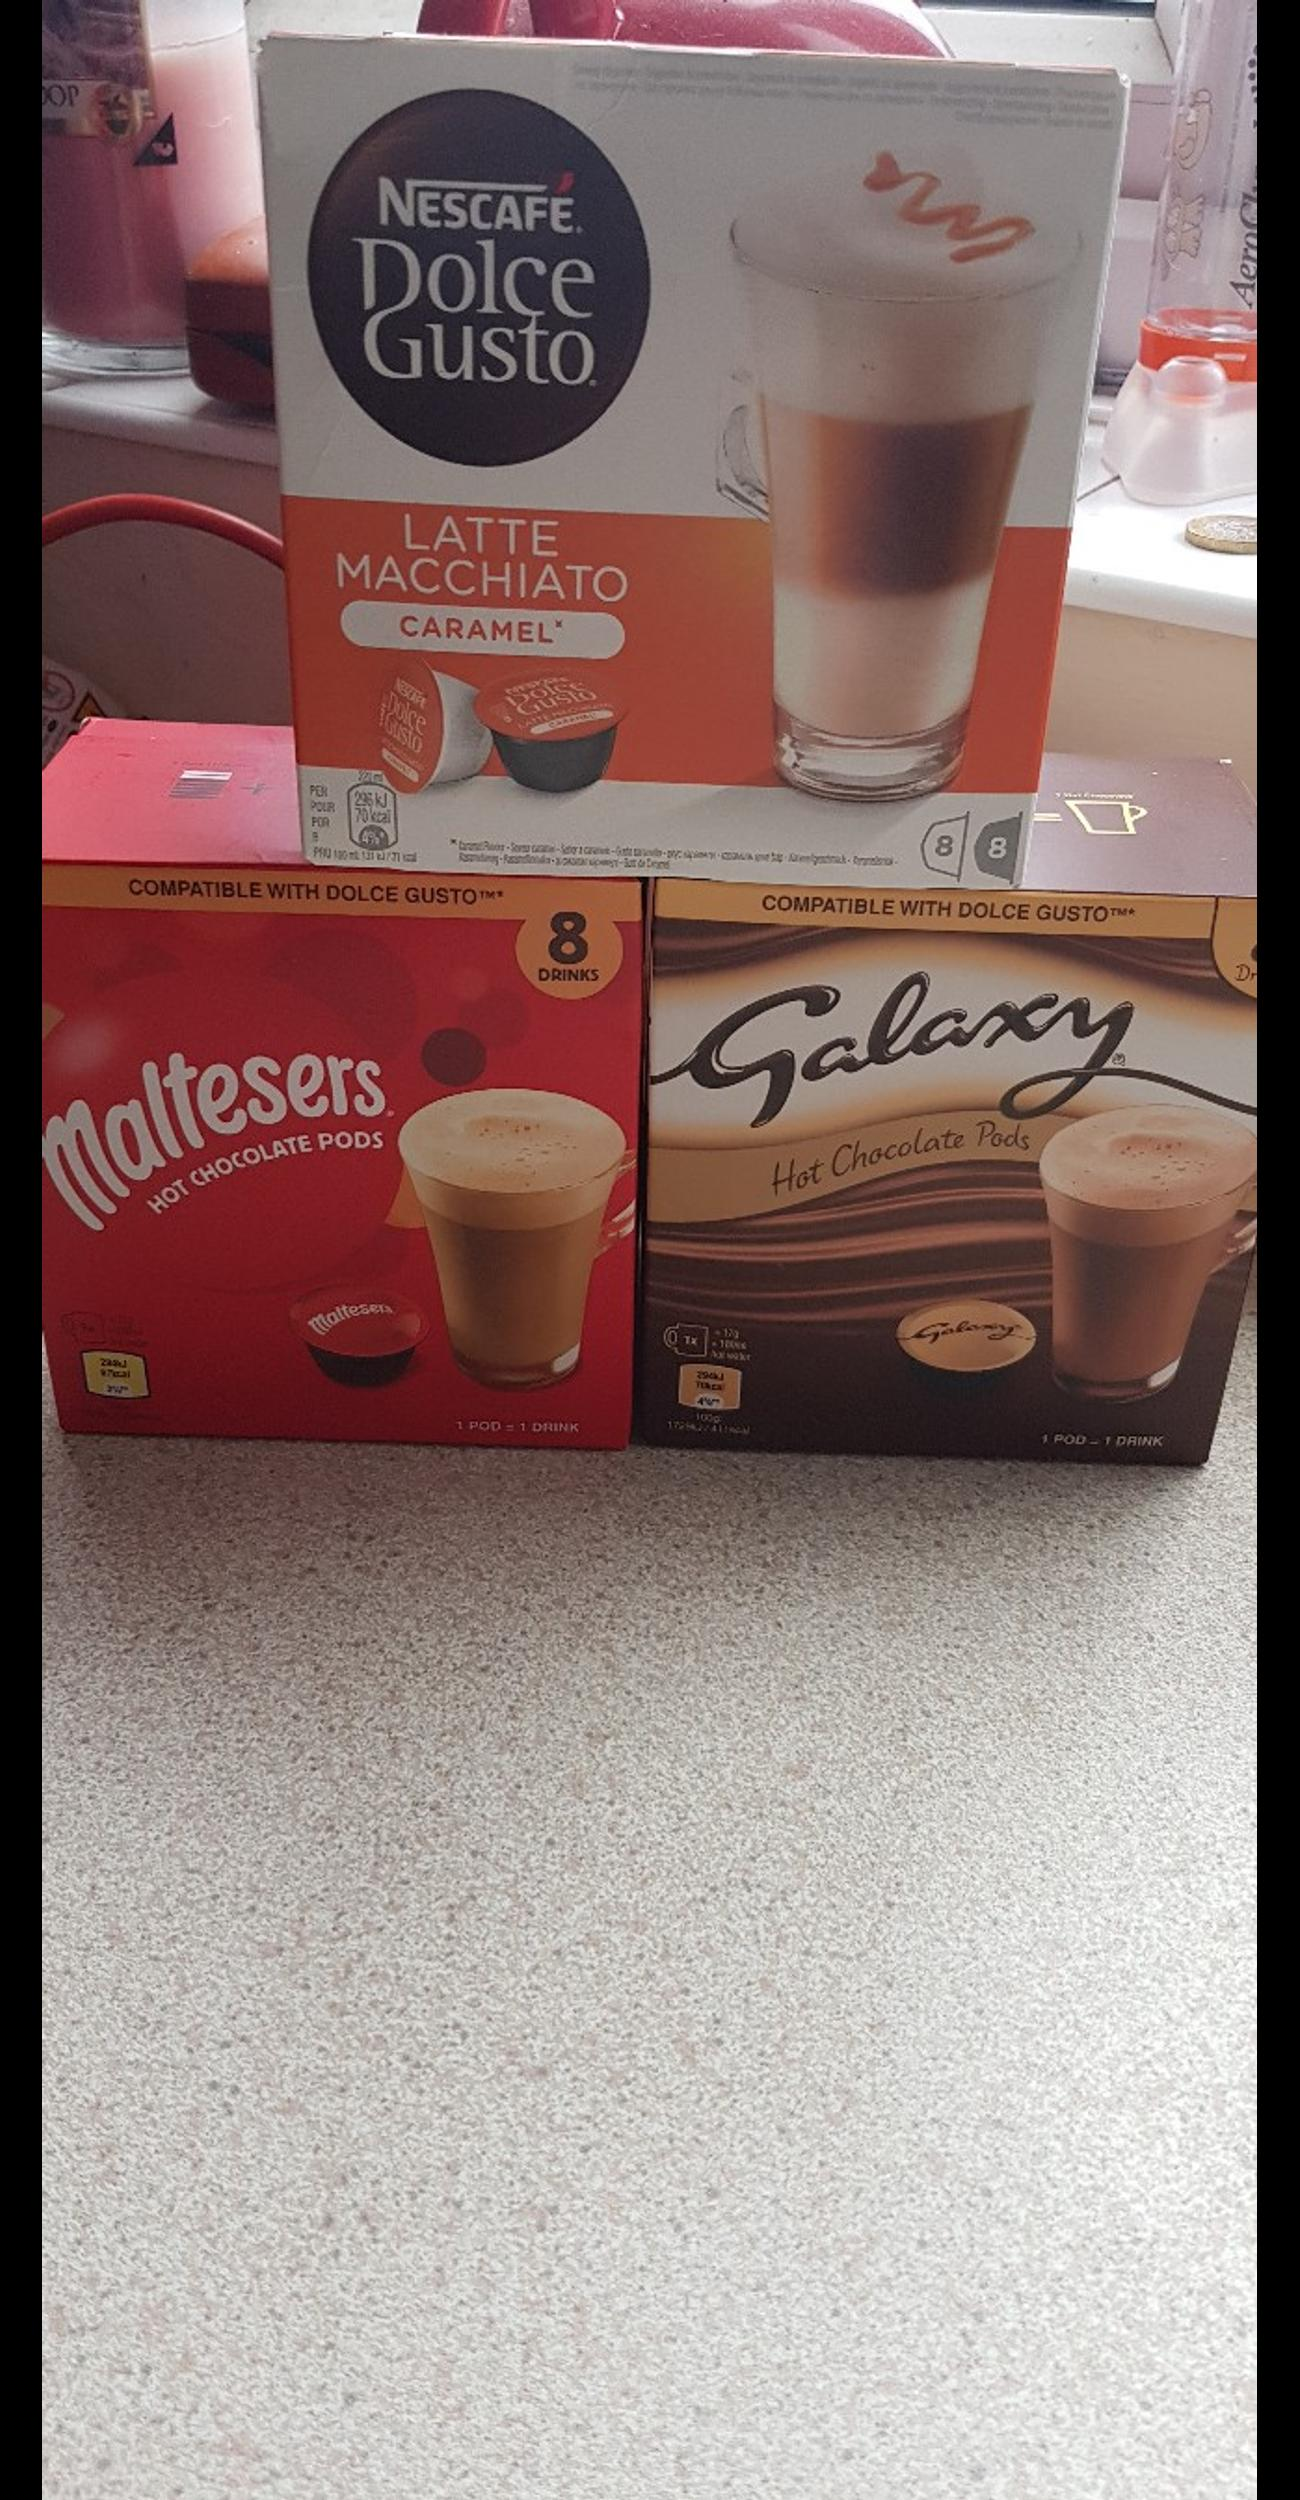 Dolce Gusto Coffee Machine And Pods